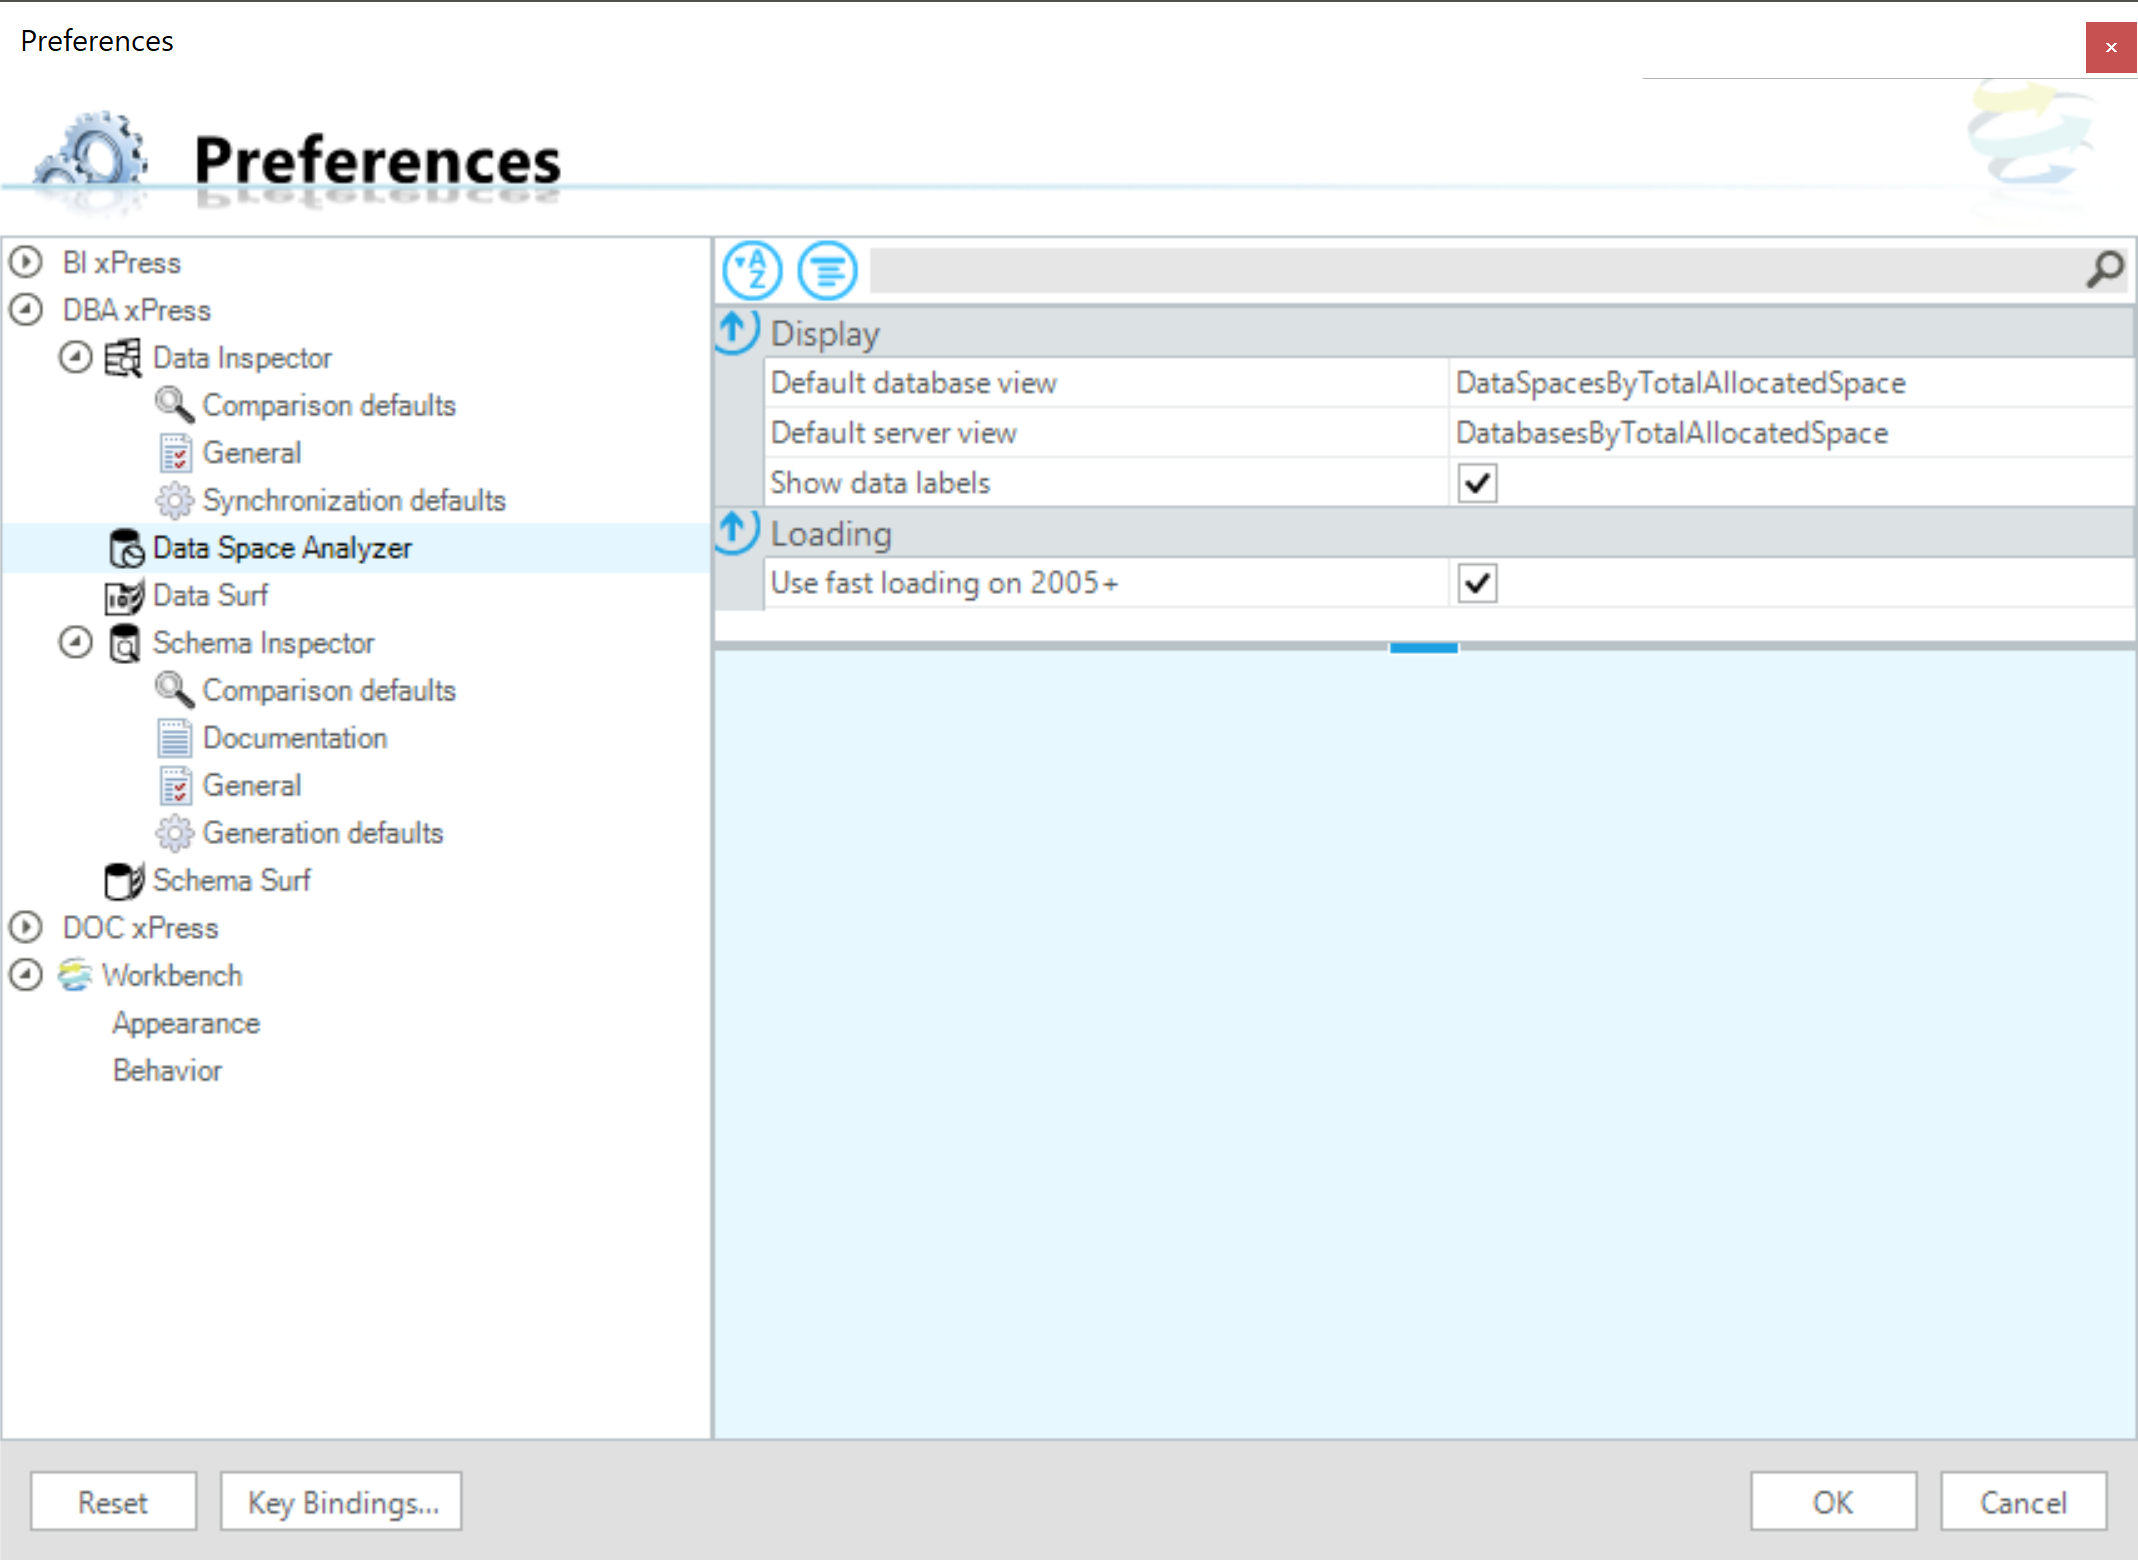 SentryOne Workbench DBA xPress Preferences Data Space Analyzer